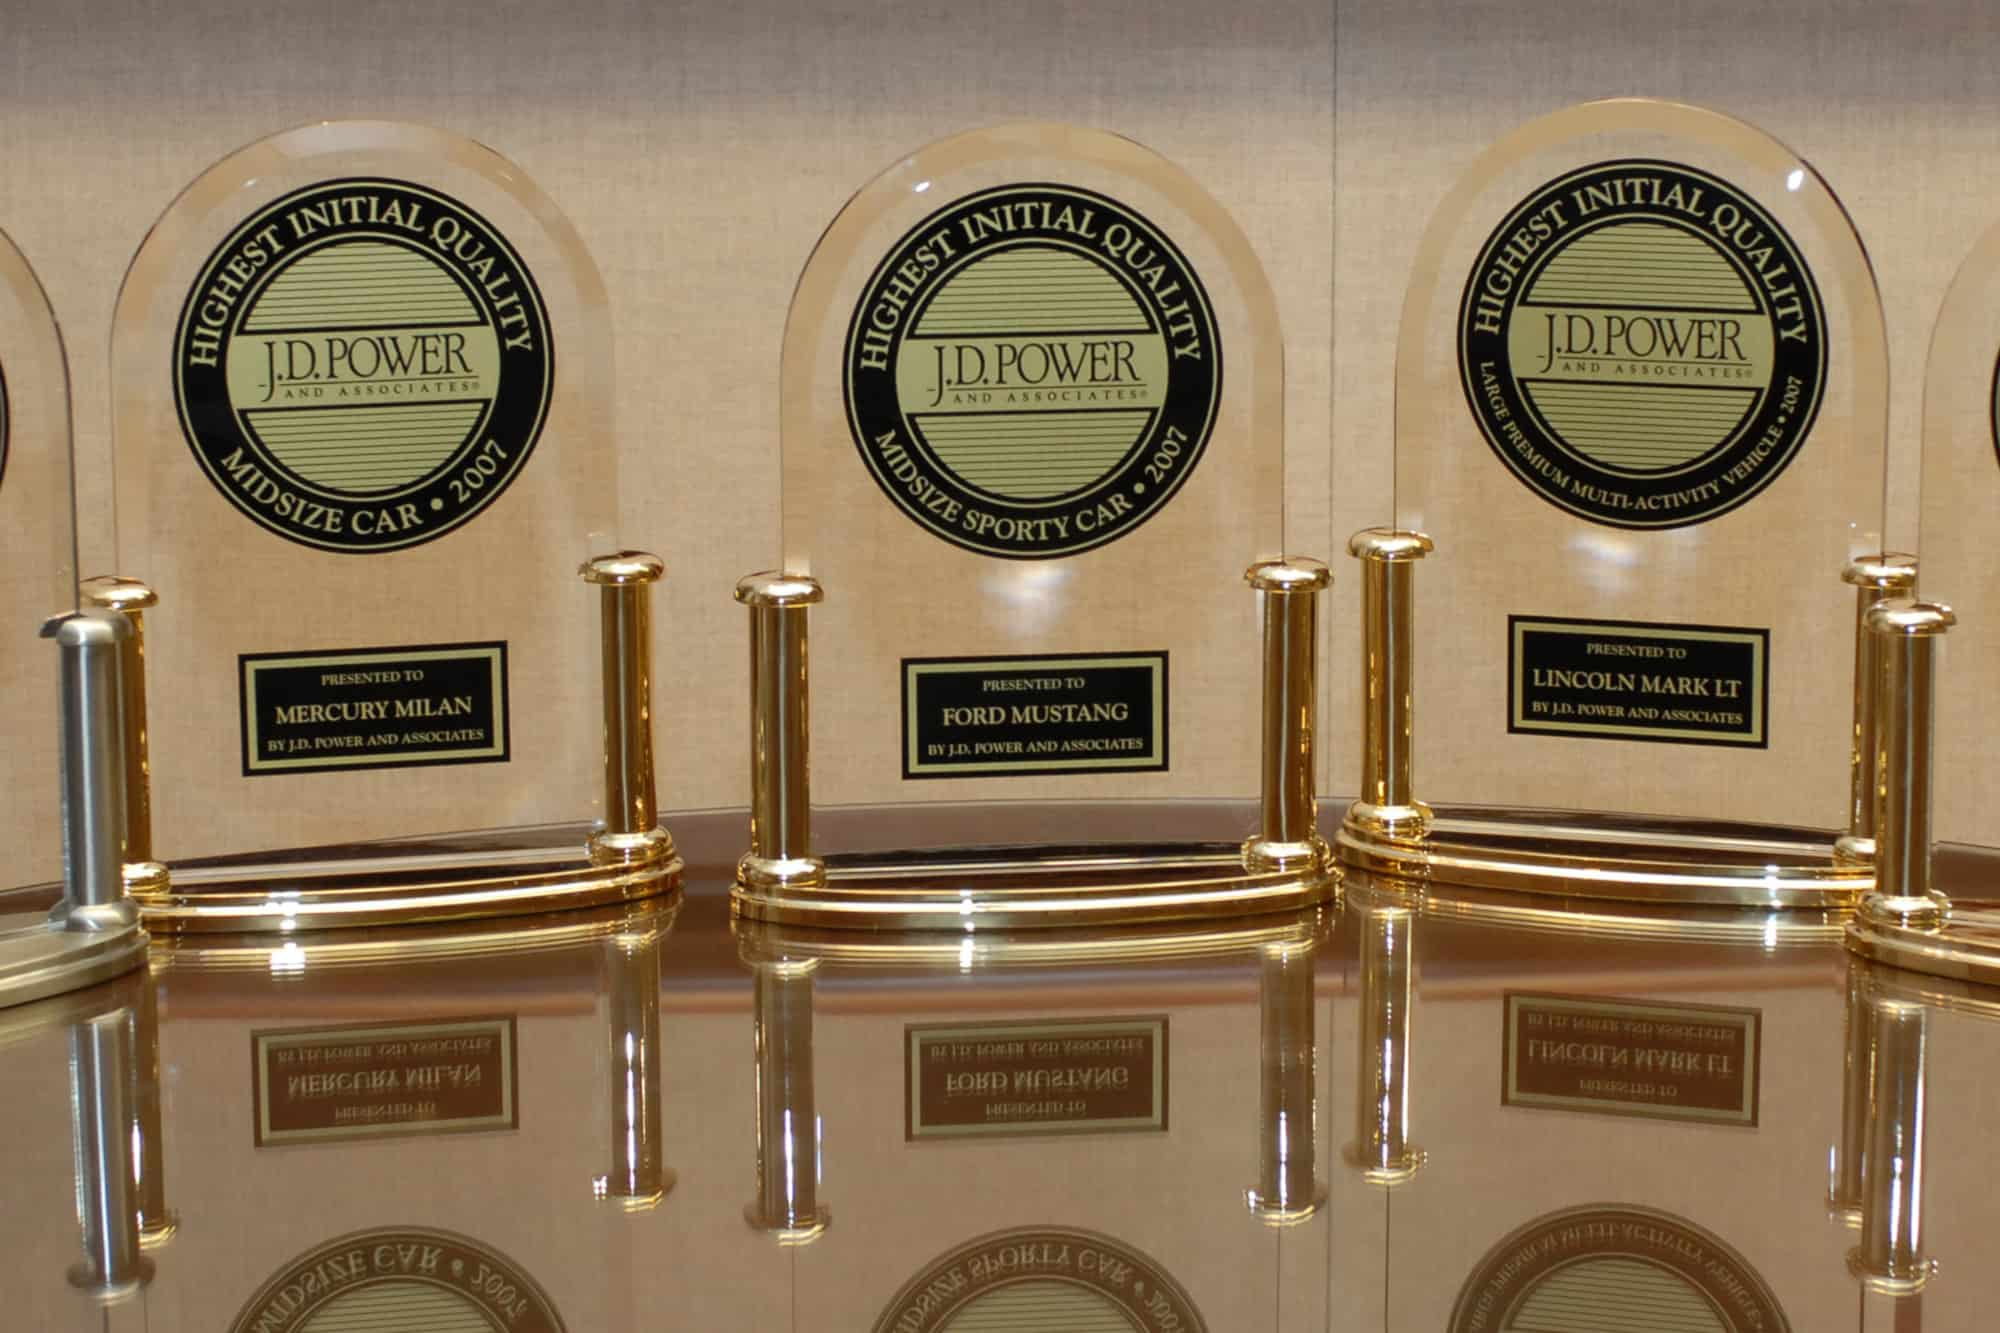 JD Power awards for Ford Lincoln Mercury showing marketing agencies grab anything to sell customers on